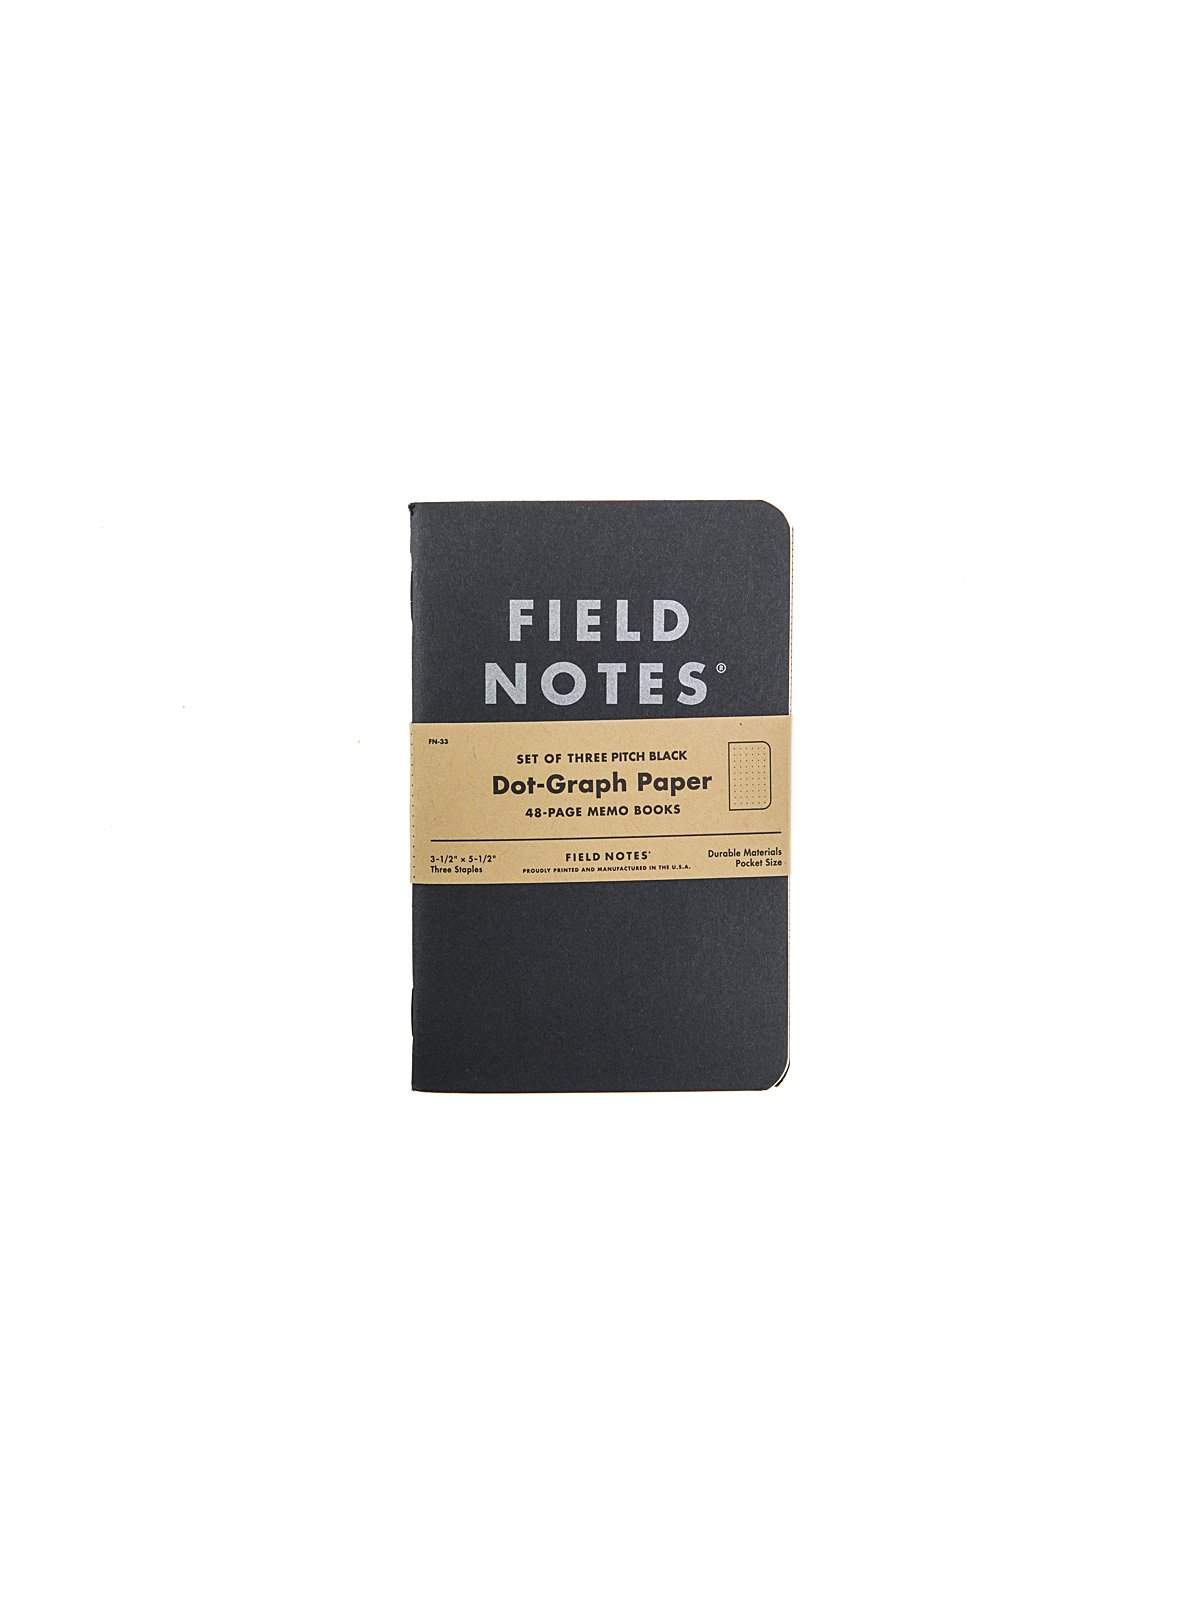 Field Notes Pitch Black Memo Book 3 Pack Dot Graph Paper - MORE by Morello Indonesia